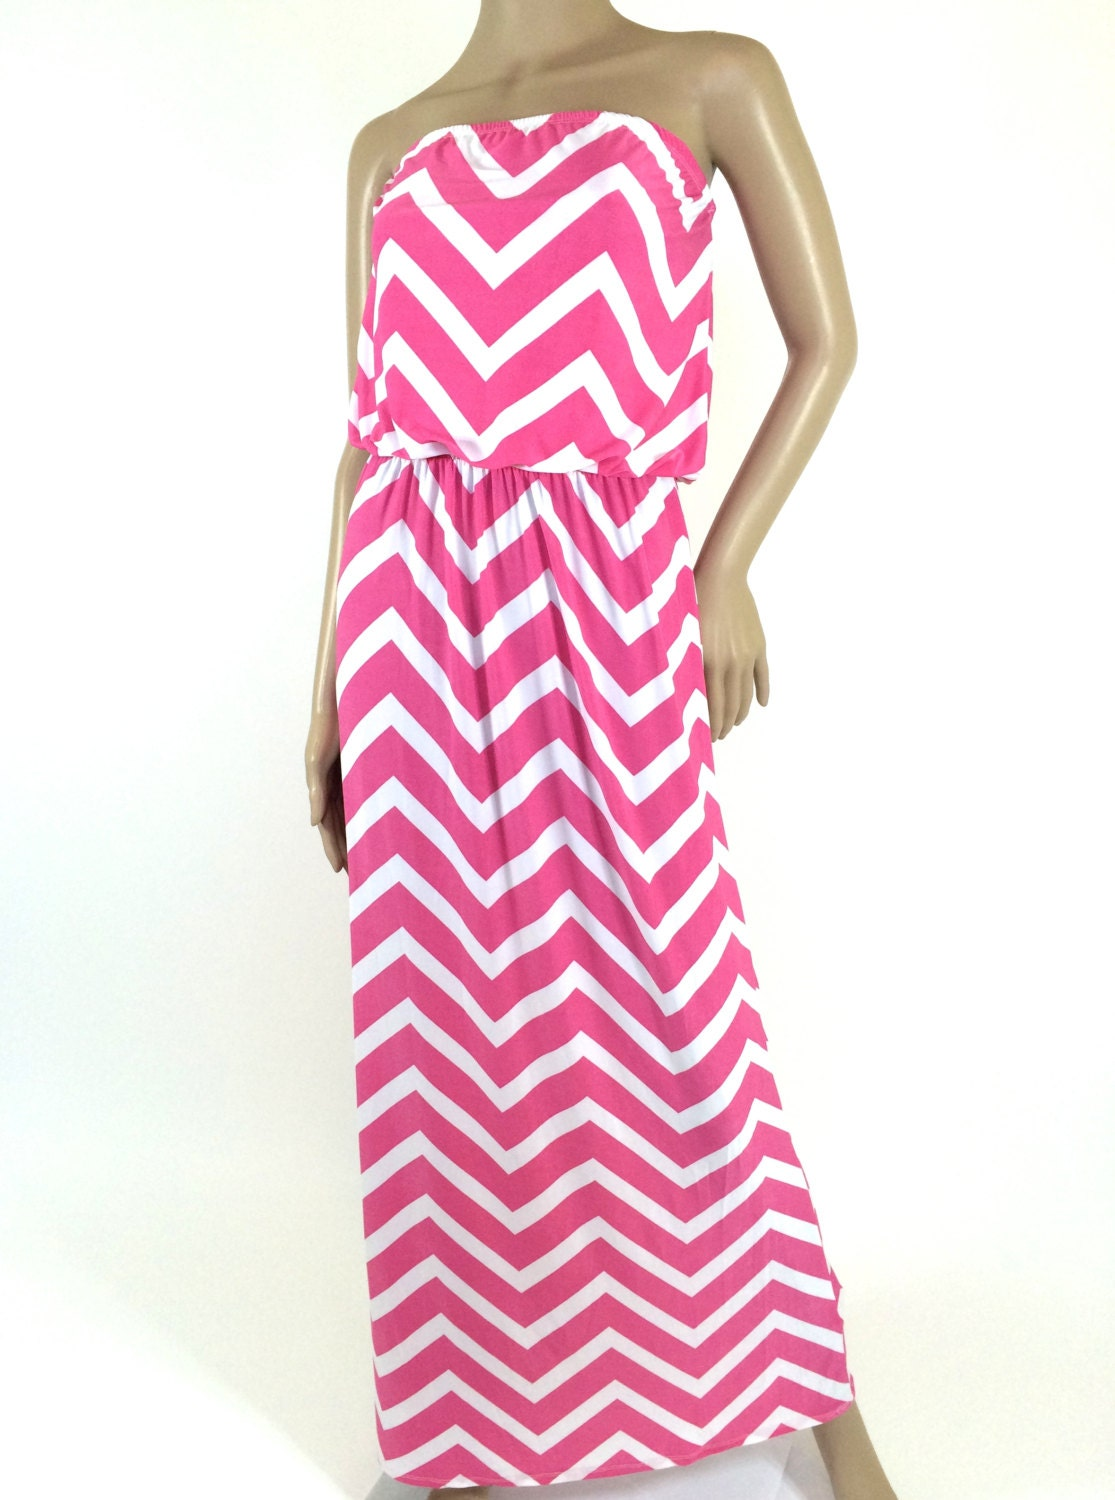 Shop for pink chevron maxi dress online at Target. Free shipping on purchases over $35 and save 5% every day with your Target REDcard.